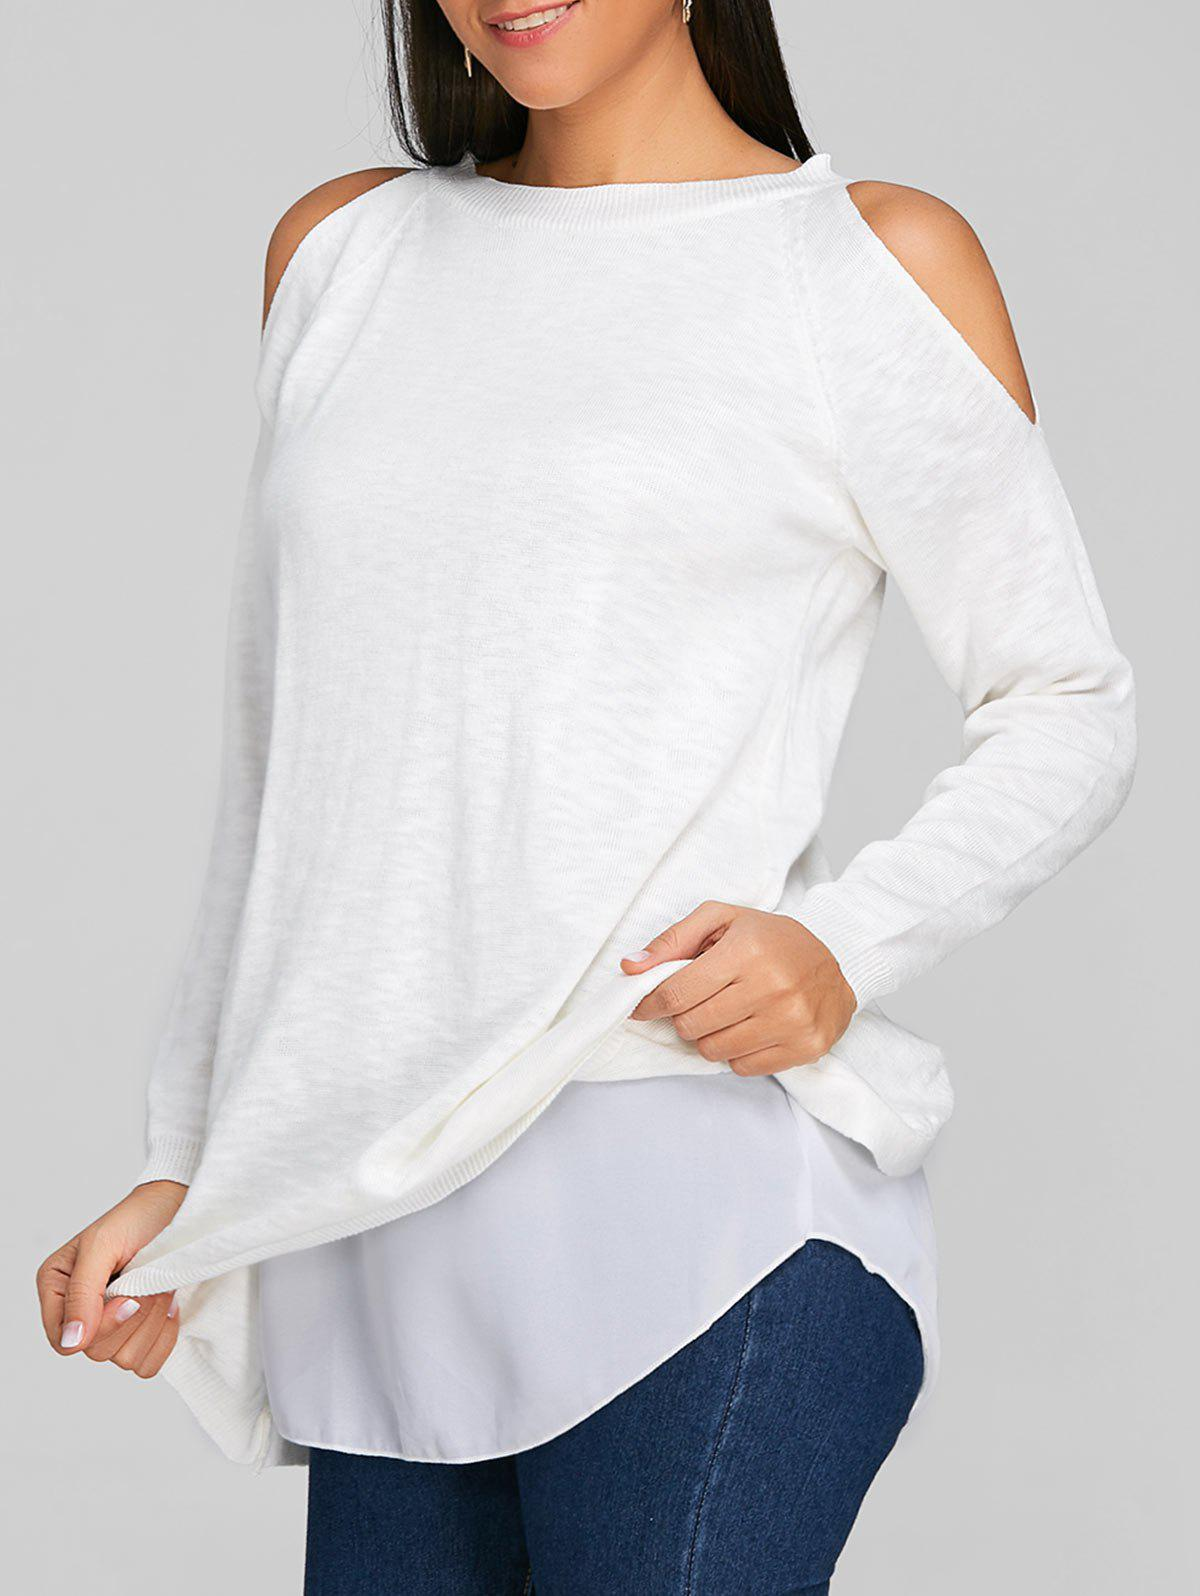 Chiffon Insert Cold Shoulder Tunic Knitwear stretchy cold shoulder slimming knitwear